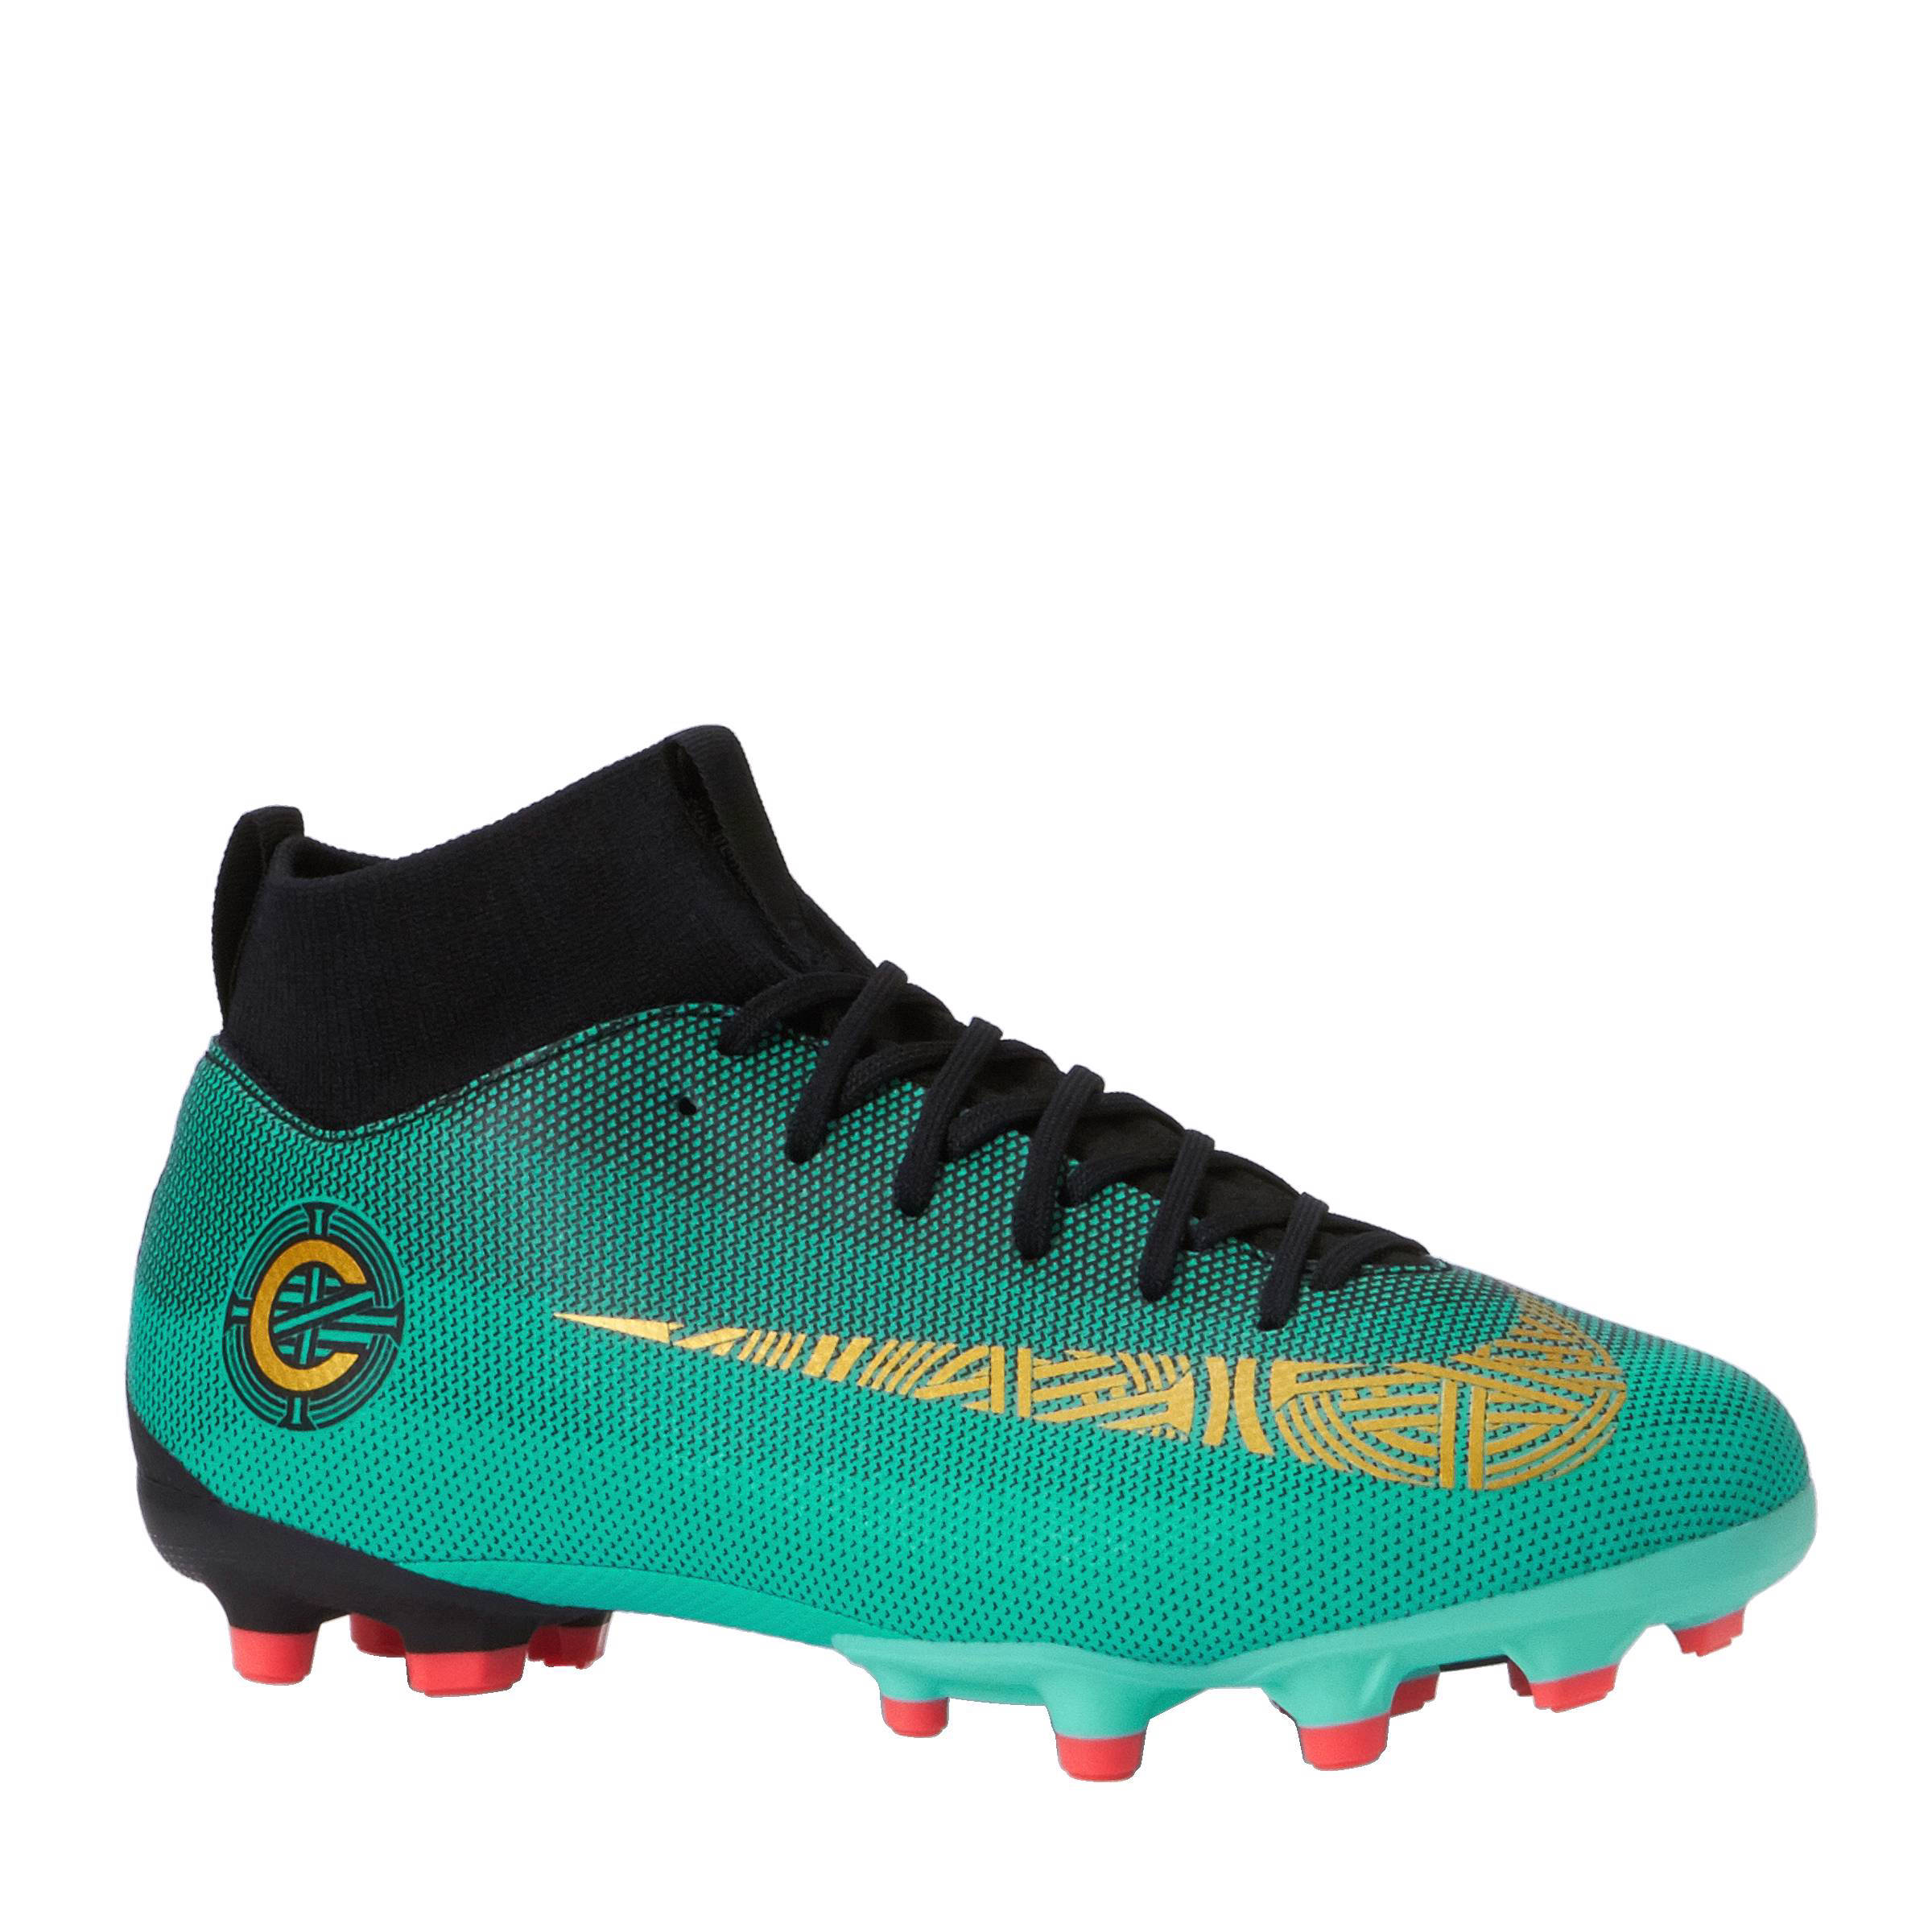 Superfly 6 Academy GS CR7 MG voetbalschoenen